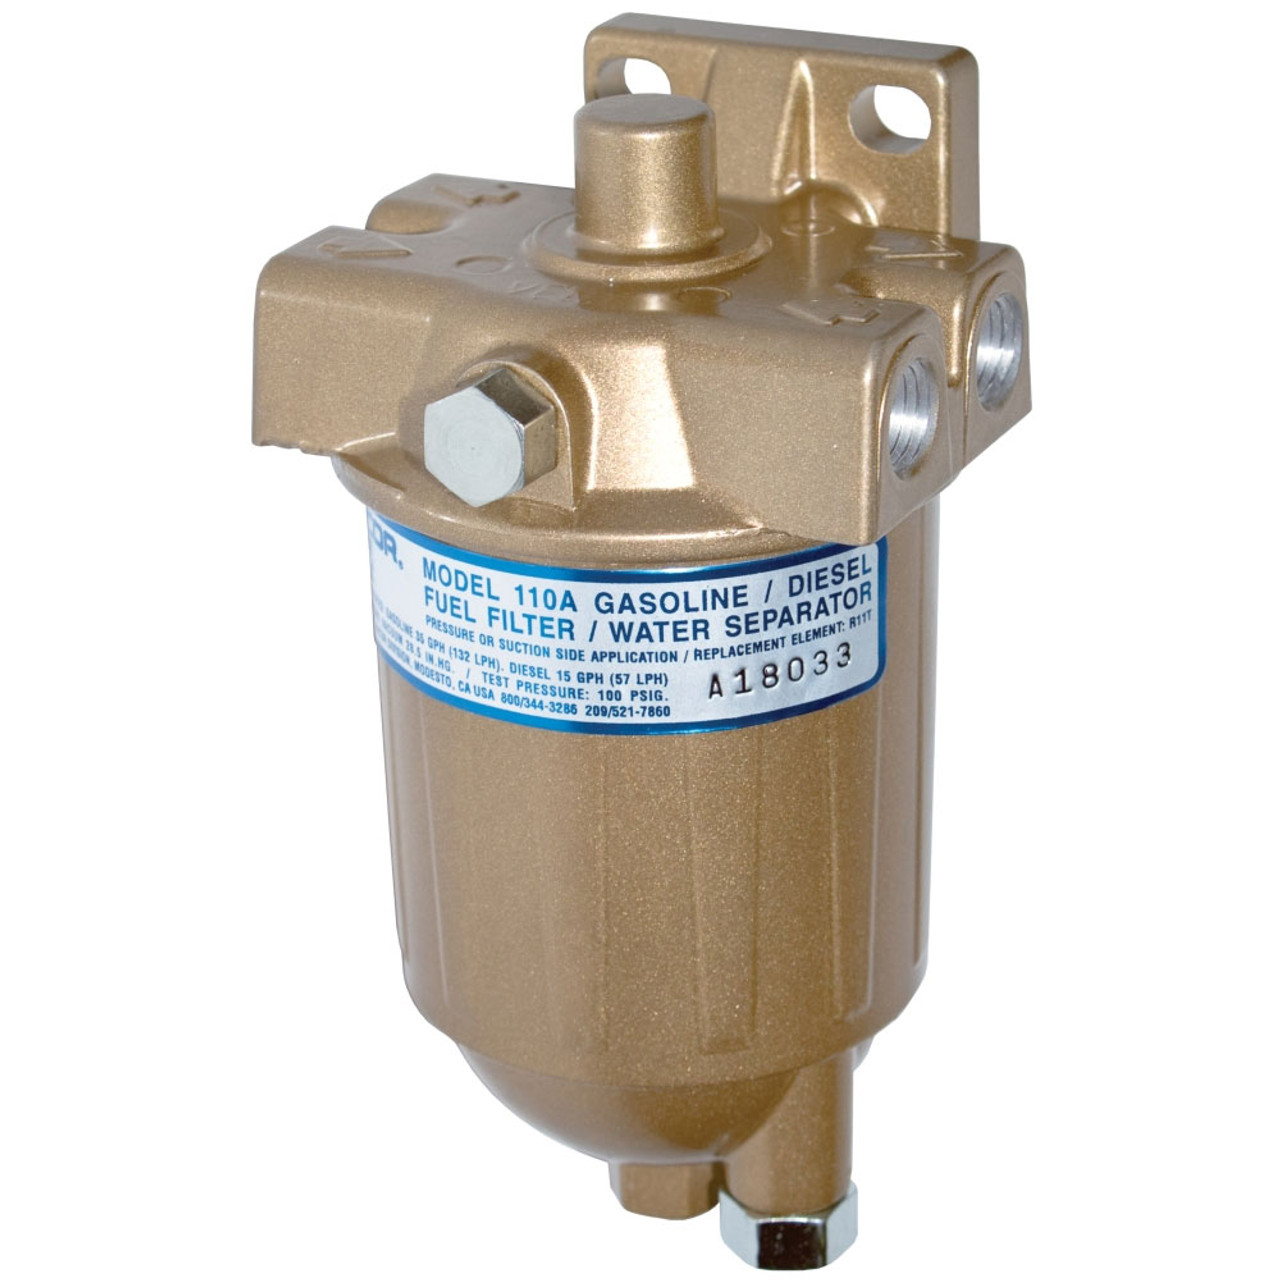 hight resolution of racor 110a series low flow fuel filter water separator filter assembly 10 micron 6 qty john m ellsworth co inc